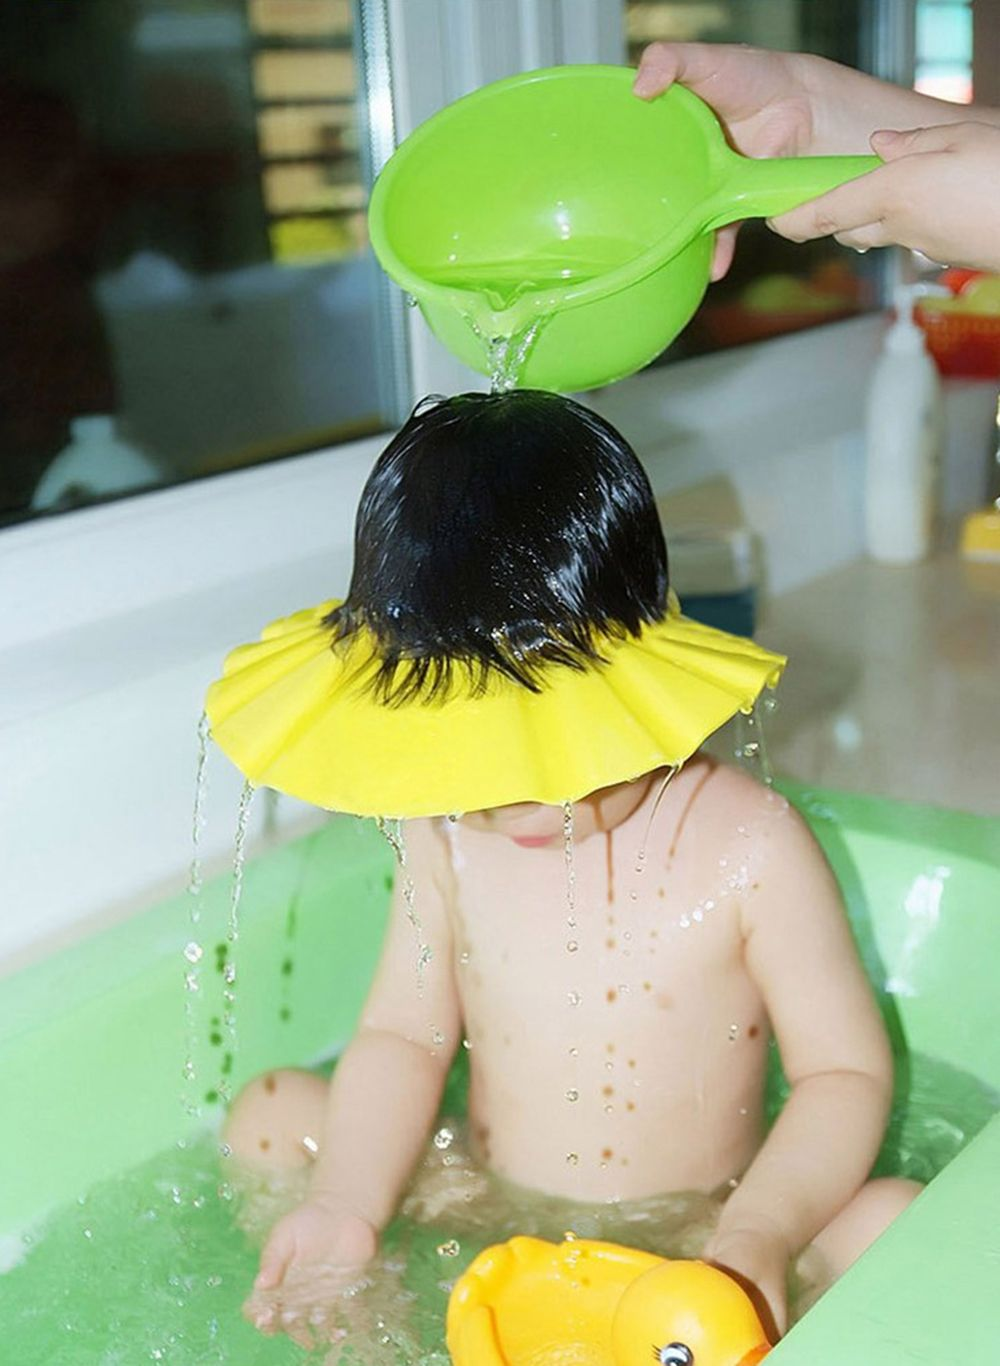 951c26f43 Keep water out of your baby's eyes and ears while washing hair, No ...